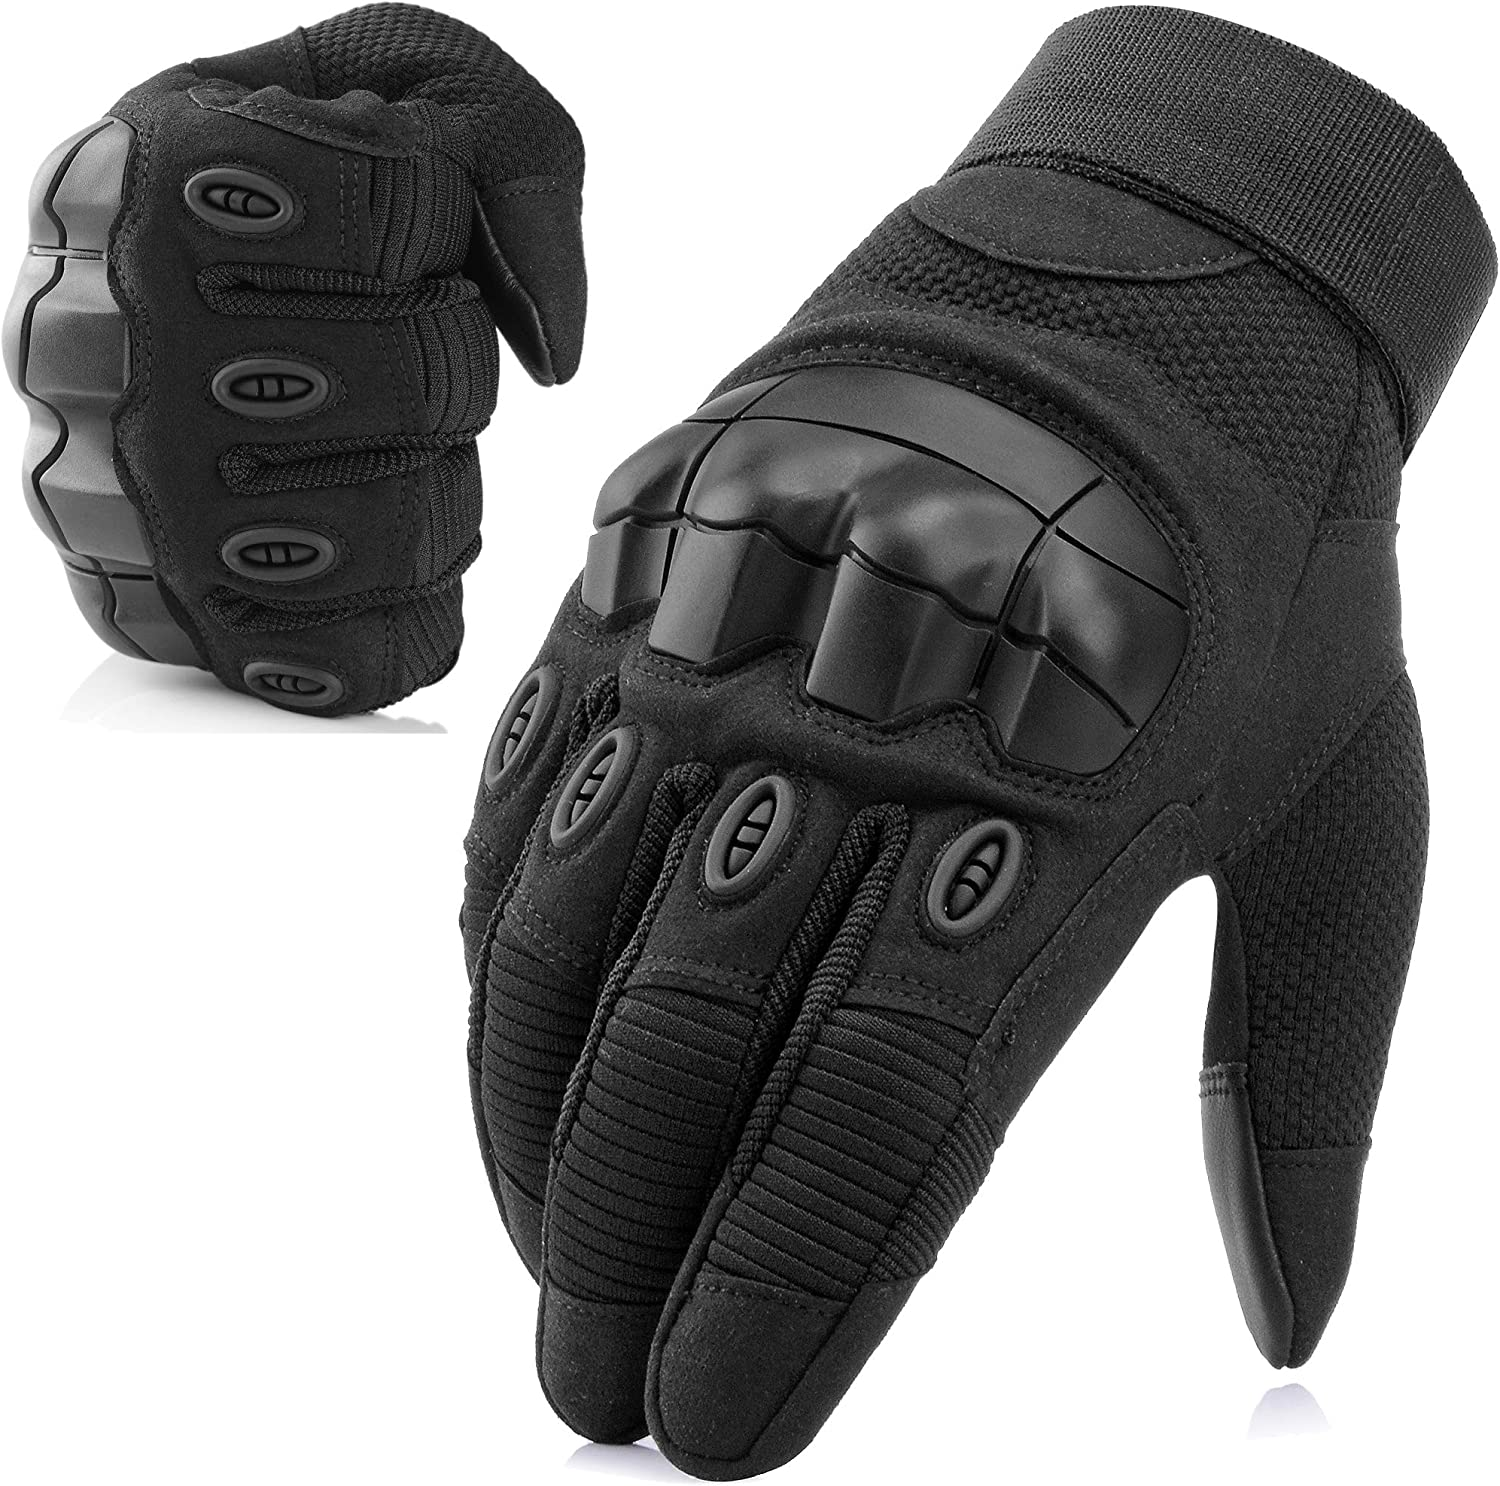 WTACTFUL Army Military Tactical Touch Screen Full Finger Gloves, black color, rubber jnuckle guards and made with microfiber artificial leather.